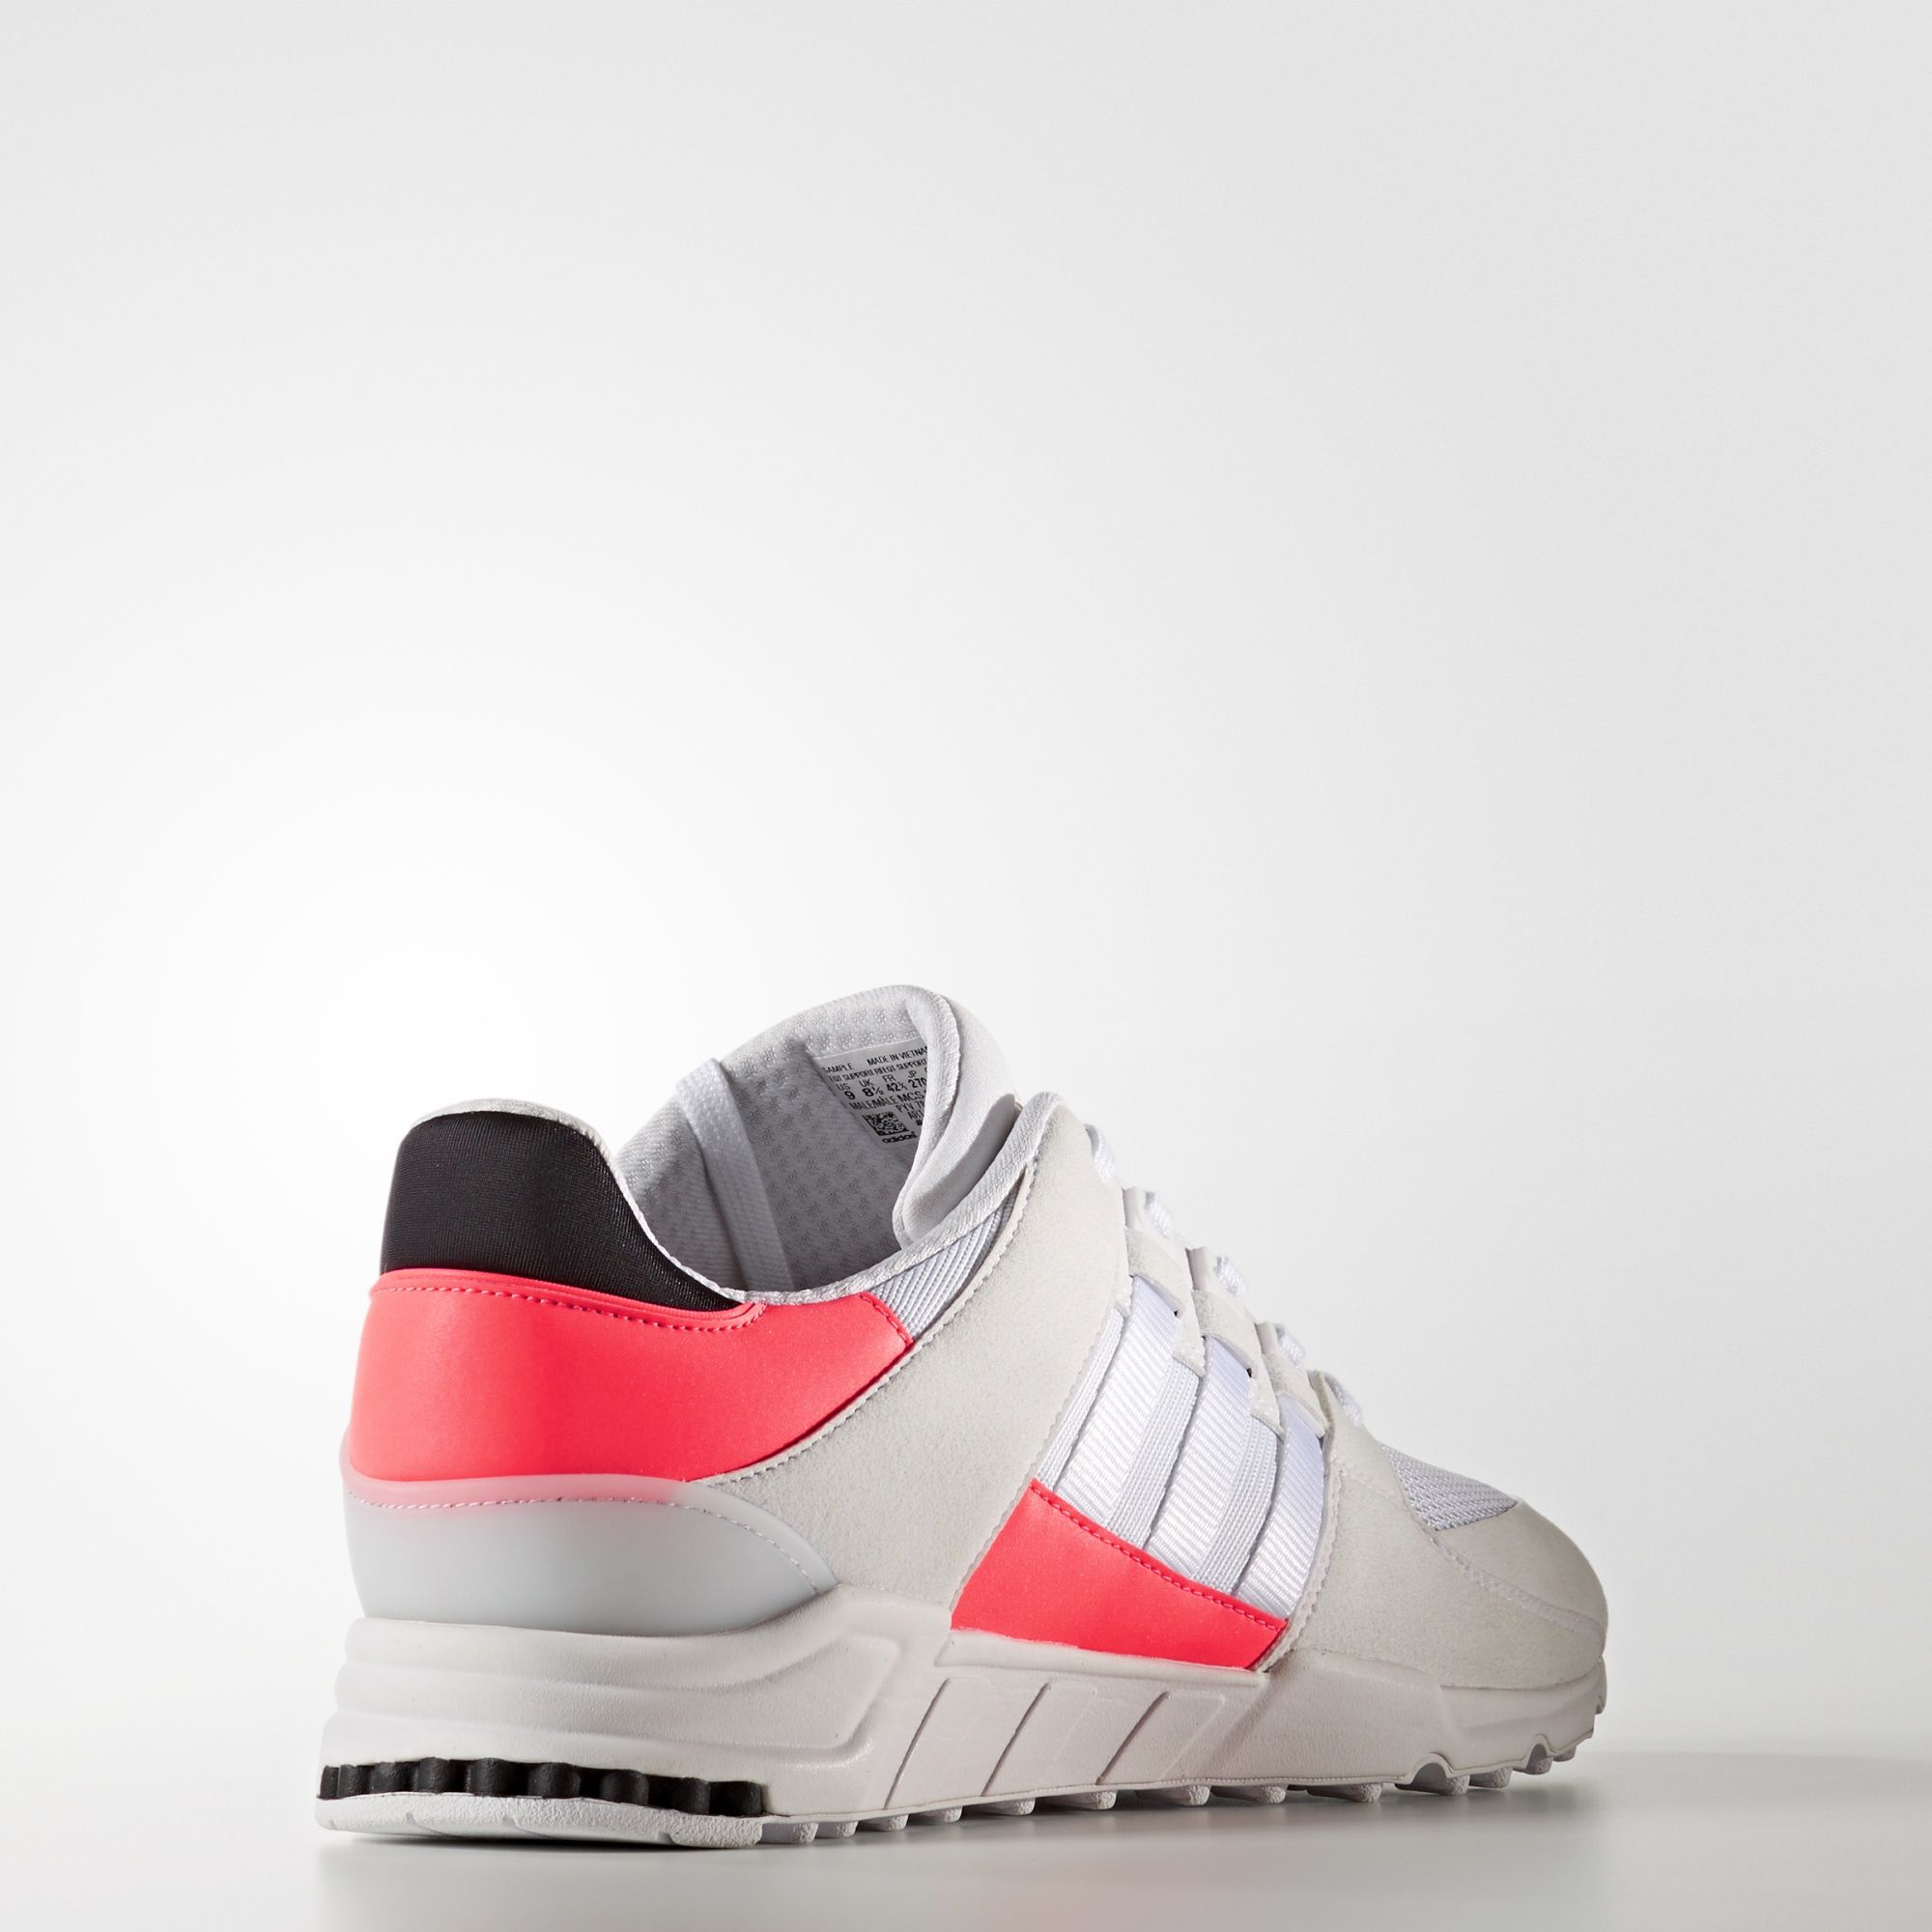 adidas EQT Support RF White Turbo Red BA7716 2